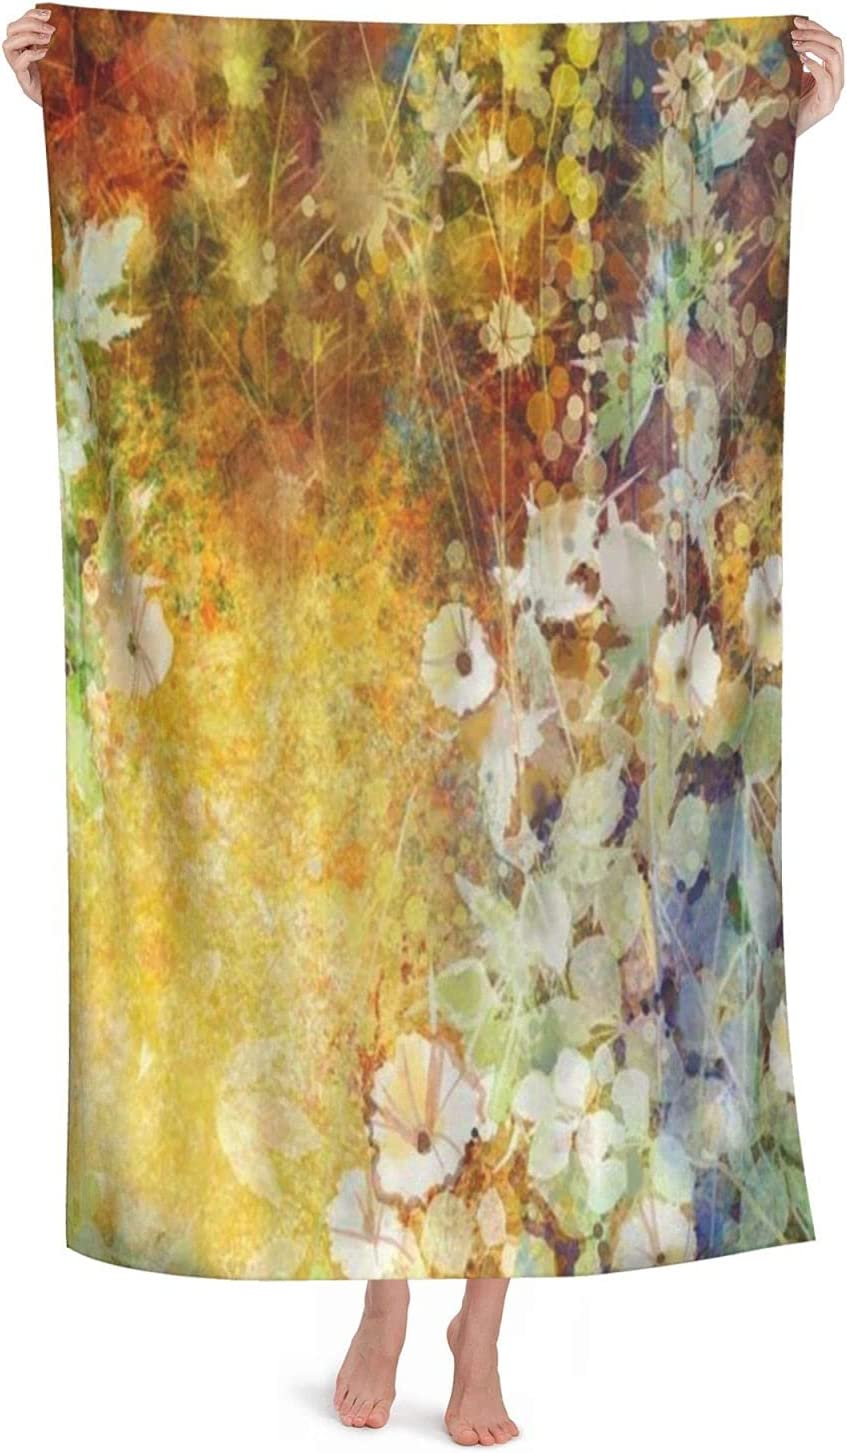 Superfine Fiber Large Light Bathroom Portland Mall Sheet Absorbent Sales of SALE items from new works Watercolor